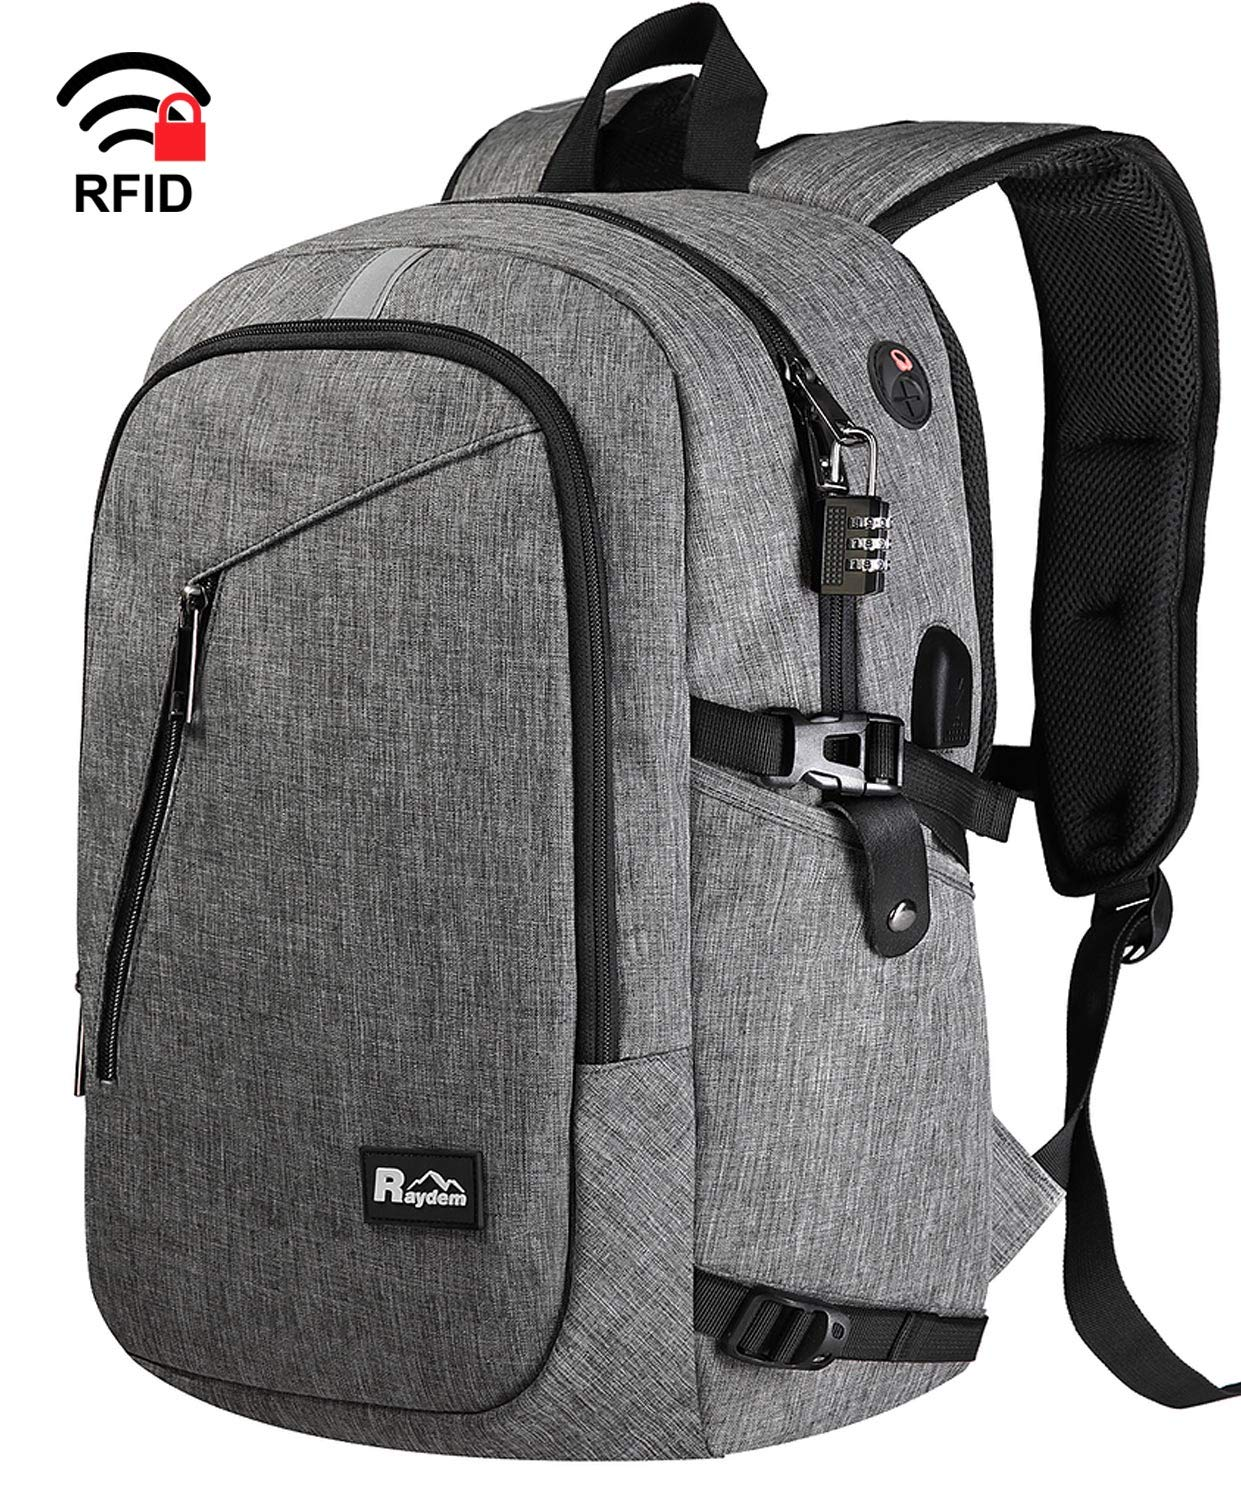 Laptop Backpack, Travel Business Anti Theft Backpack with USB Charging Port, Water Resistant College Bag for Women & Men Fits 15.6 Inch Laptop, Grey by Raydem